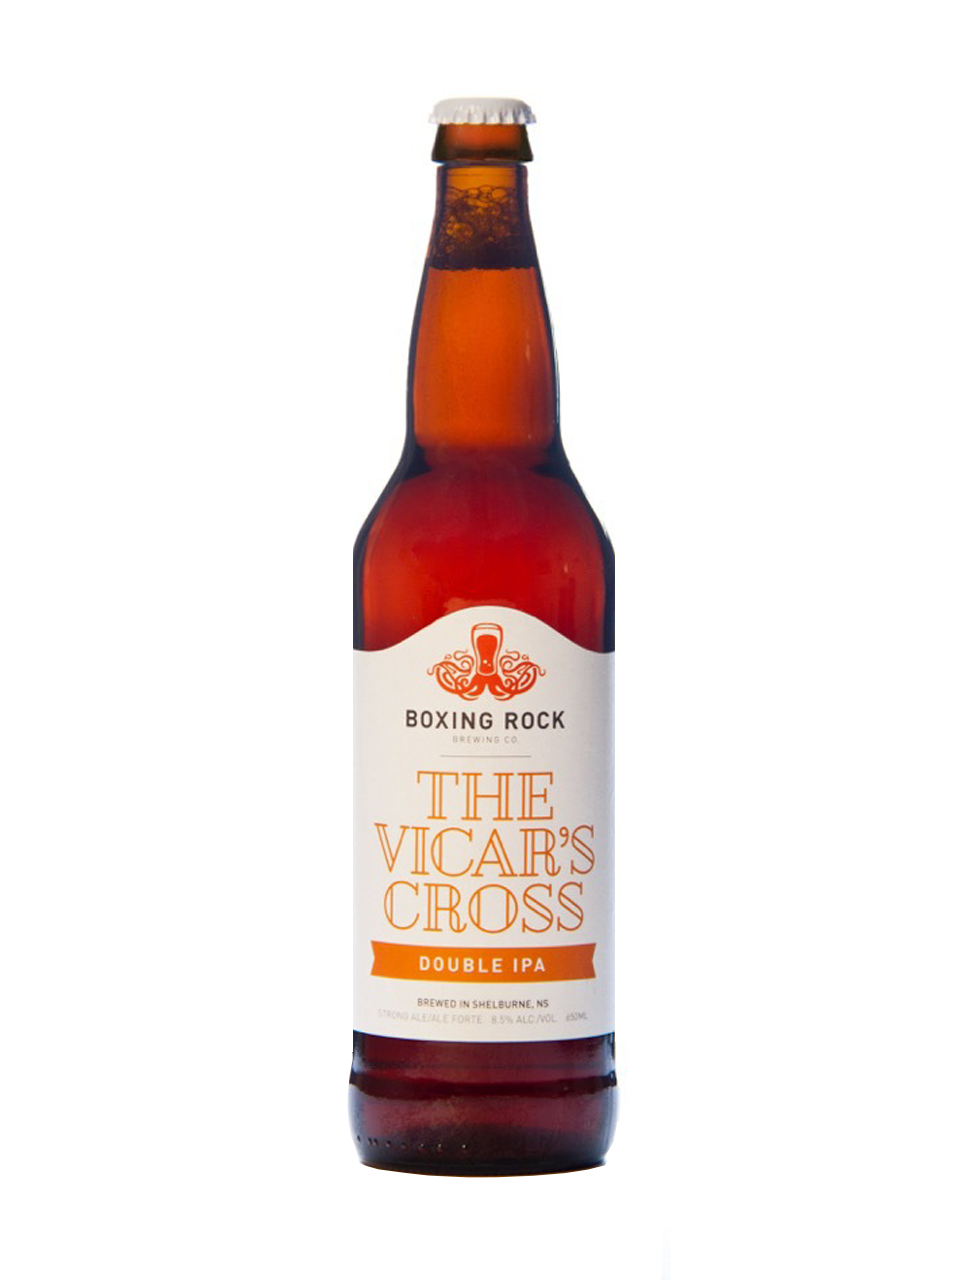 Boxing Rock Vicar's Cross Double IPA